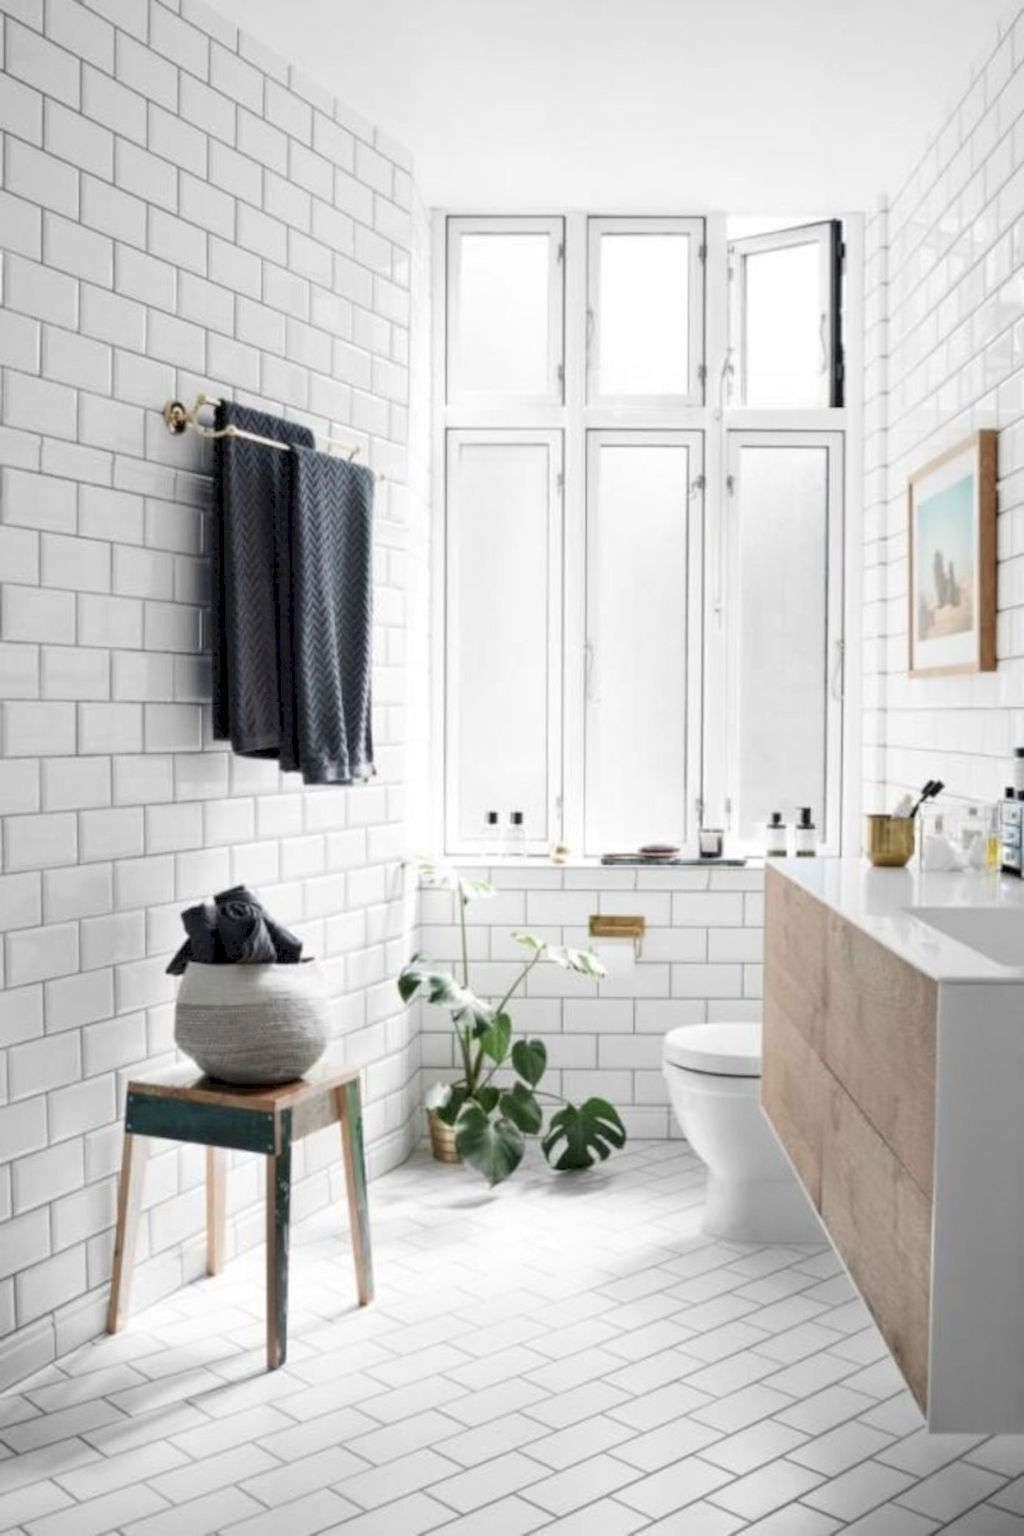 25 Tranquil Scandinavian Bathroom Decor To Get Rid Of Daily Stress - N21